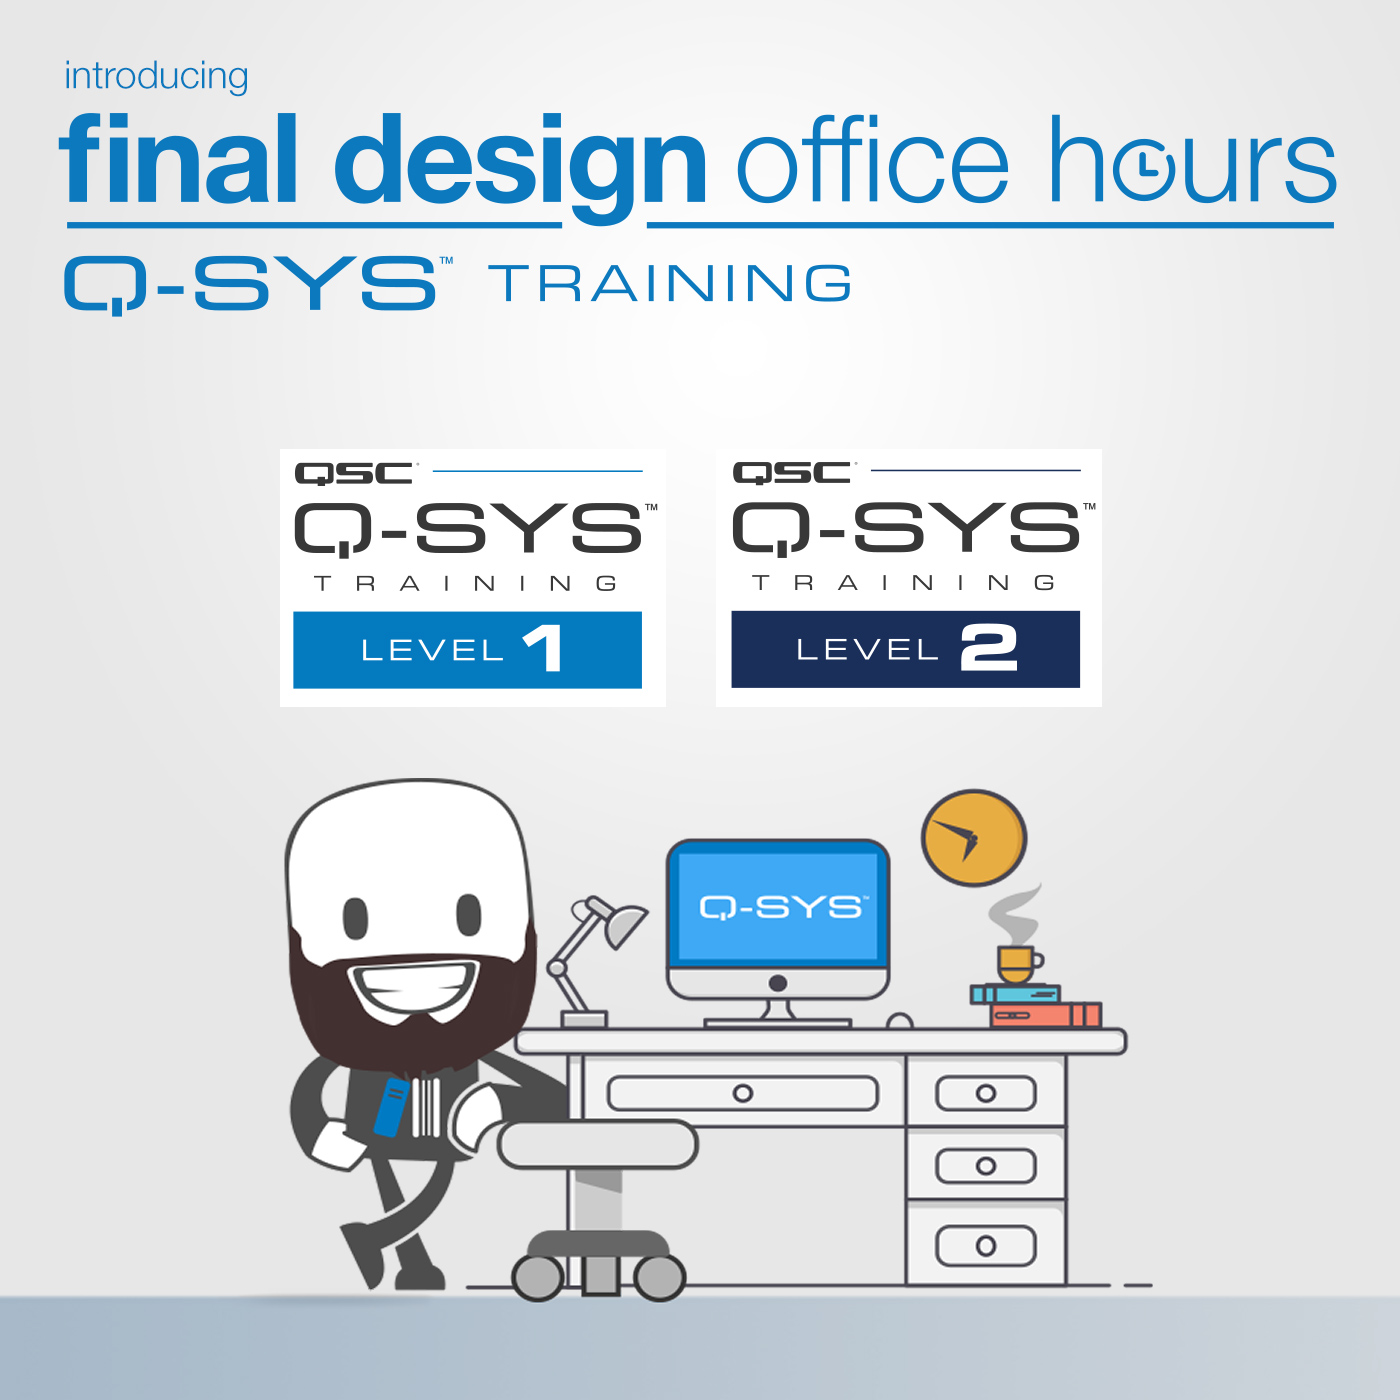 Q-SYS Training Final Design Office Hours